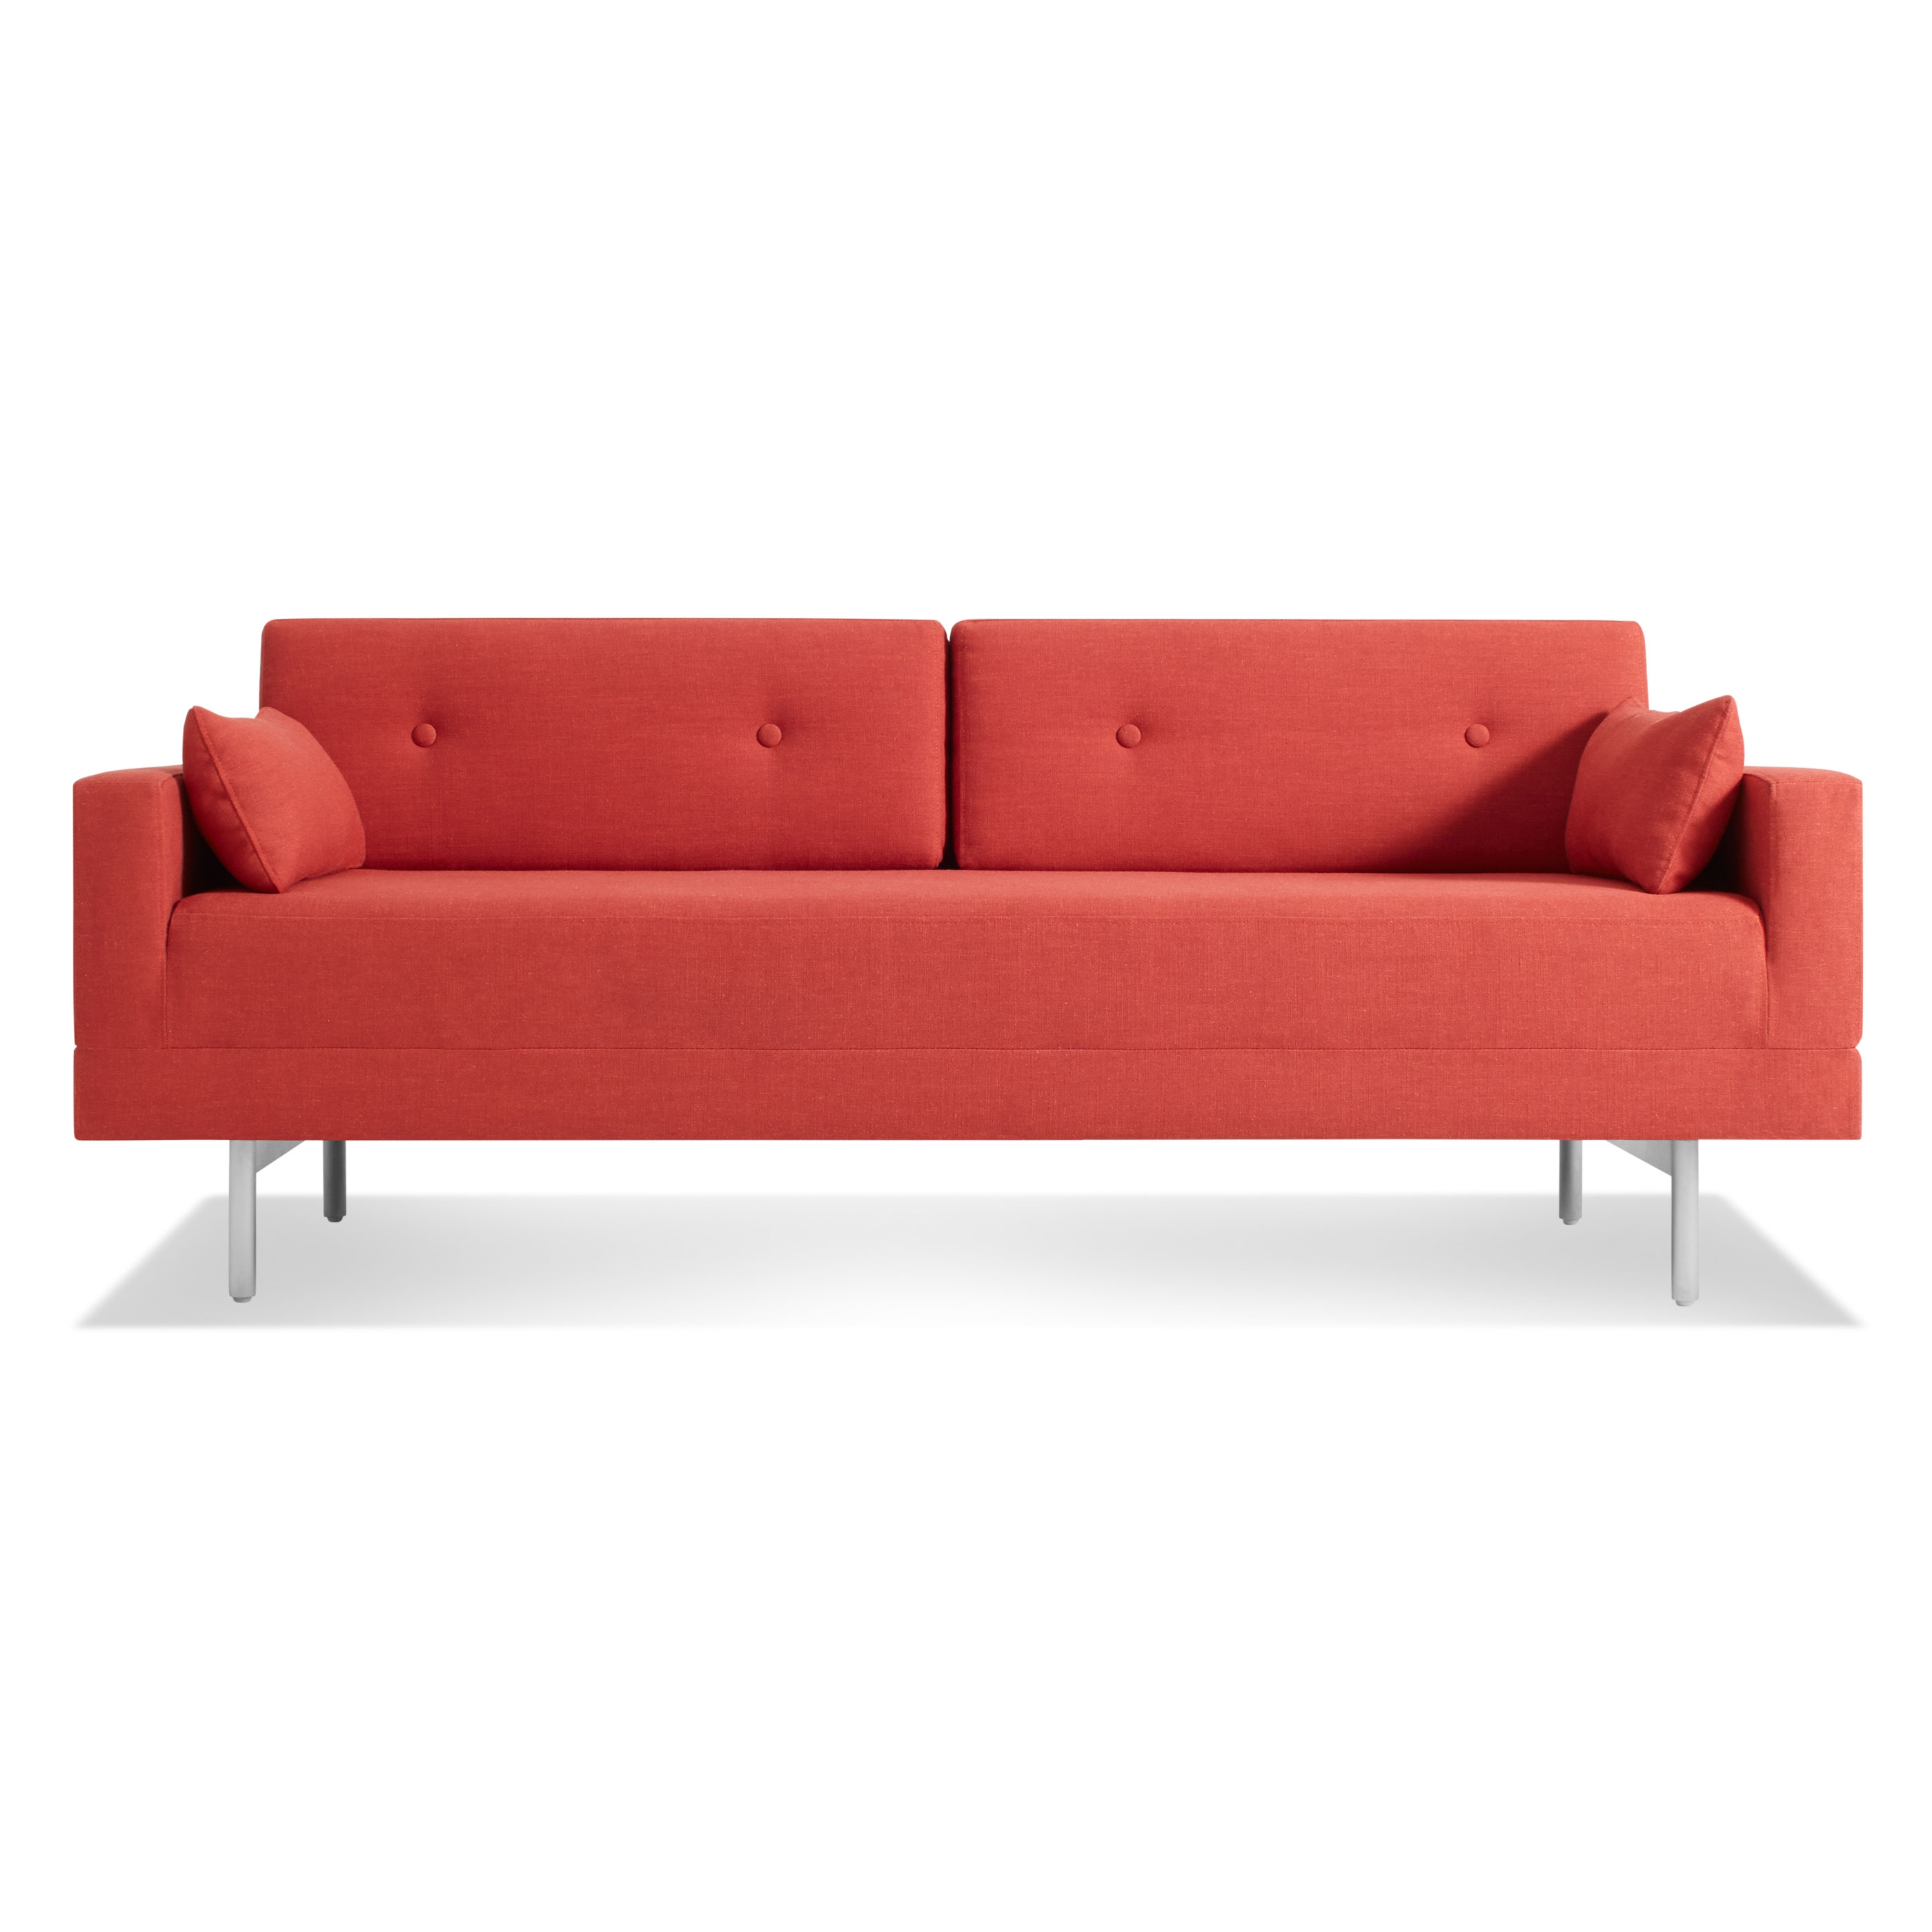 One Night Stand Modern Queen Sleeper Sofa Blu Dot For 70 Sleeper Sofa (Image 15 of 15)